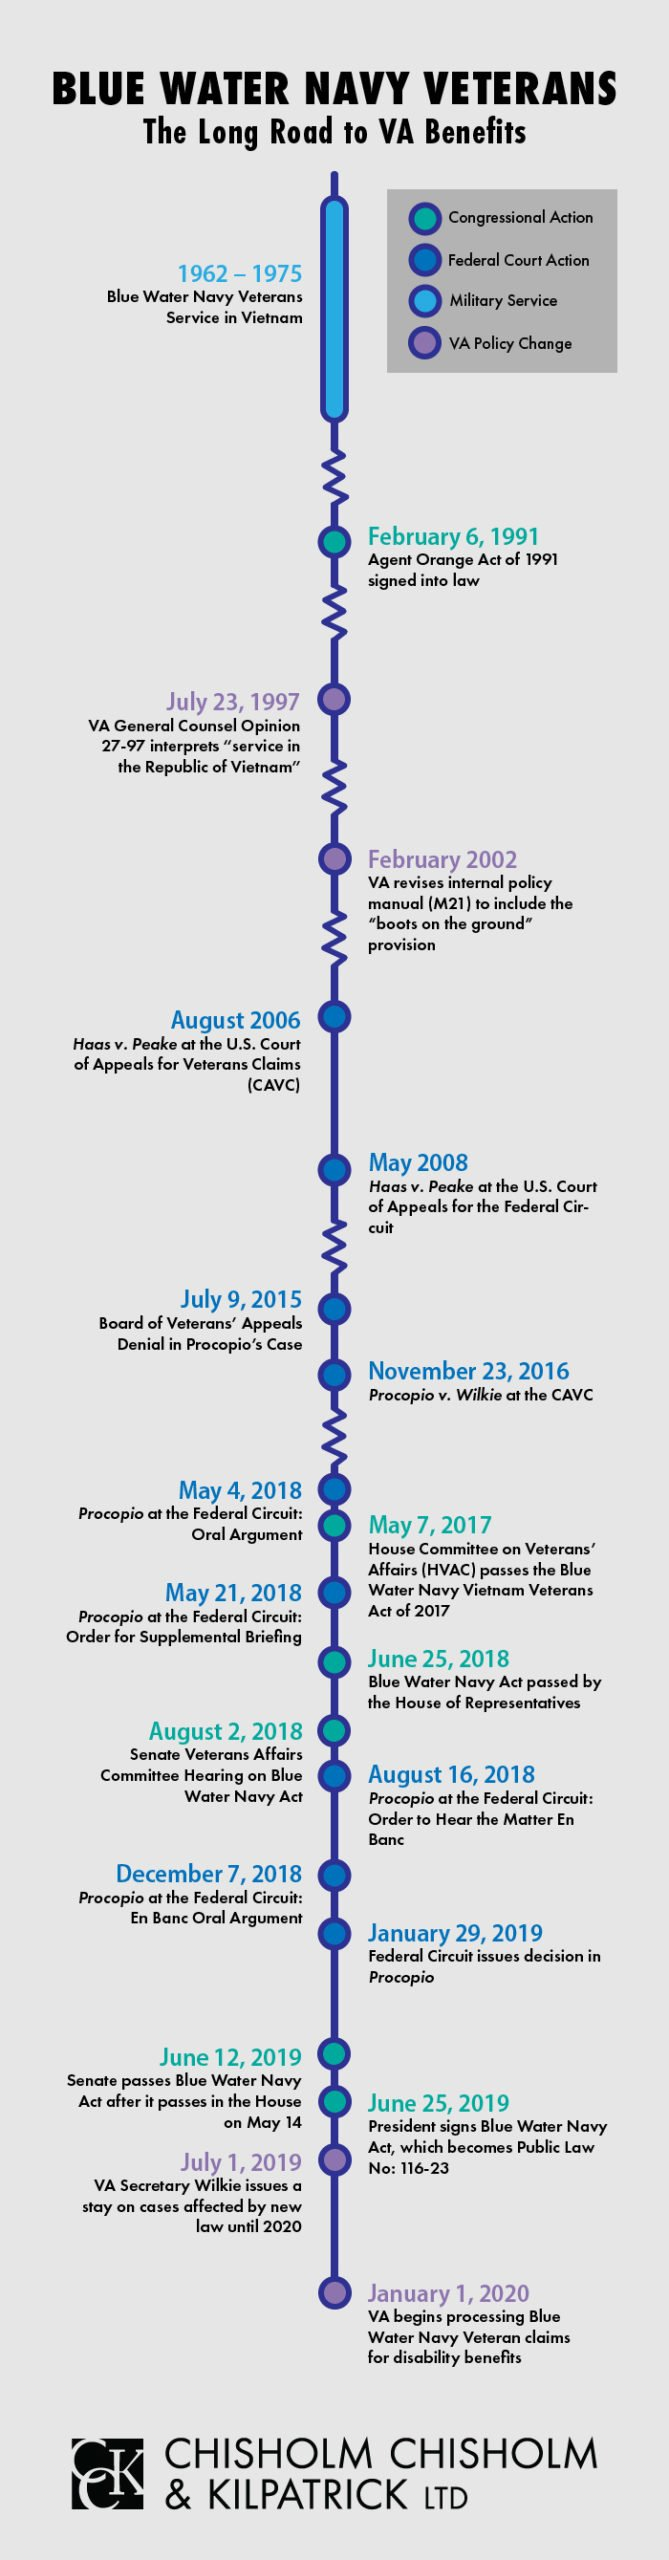 Blue Water Navy Timeline Infographic